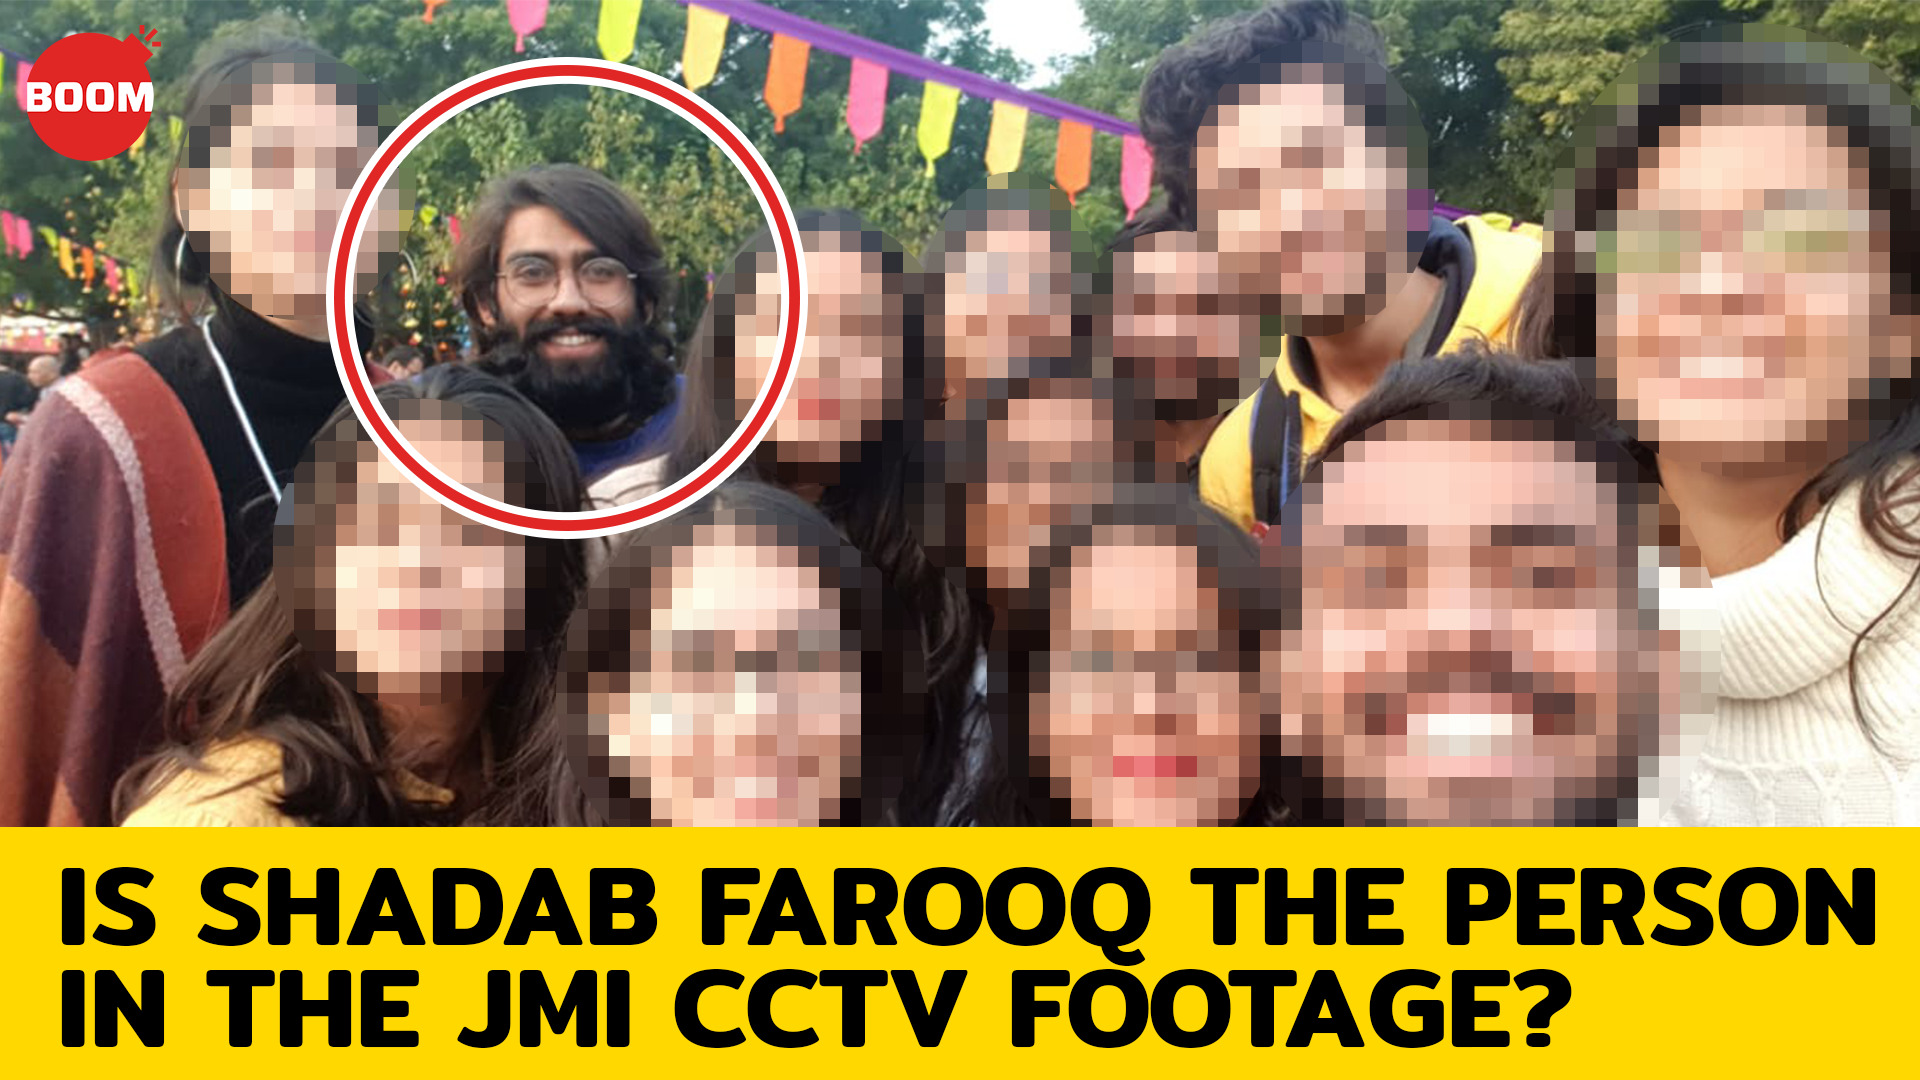 Student Injured In Jamia Shooting Same As Person In JMI CCTV Footage?